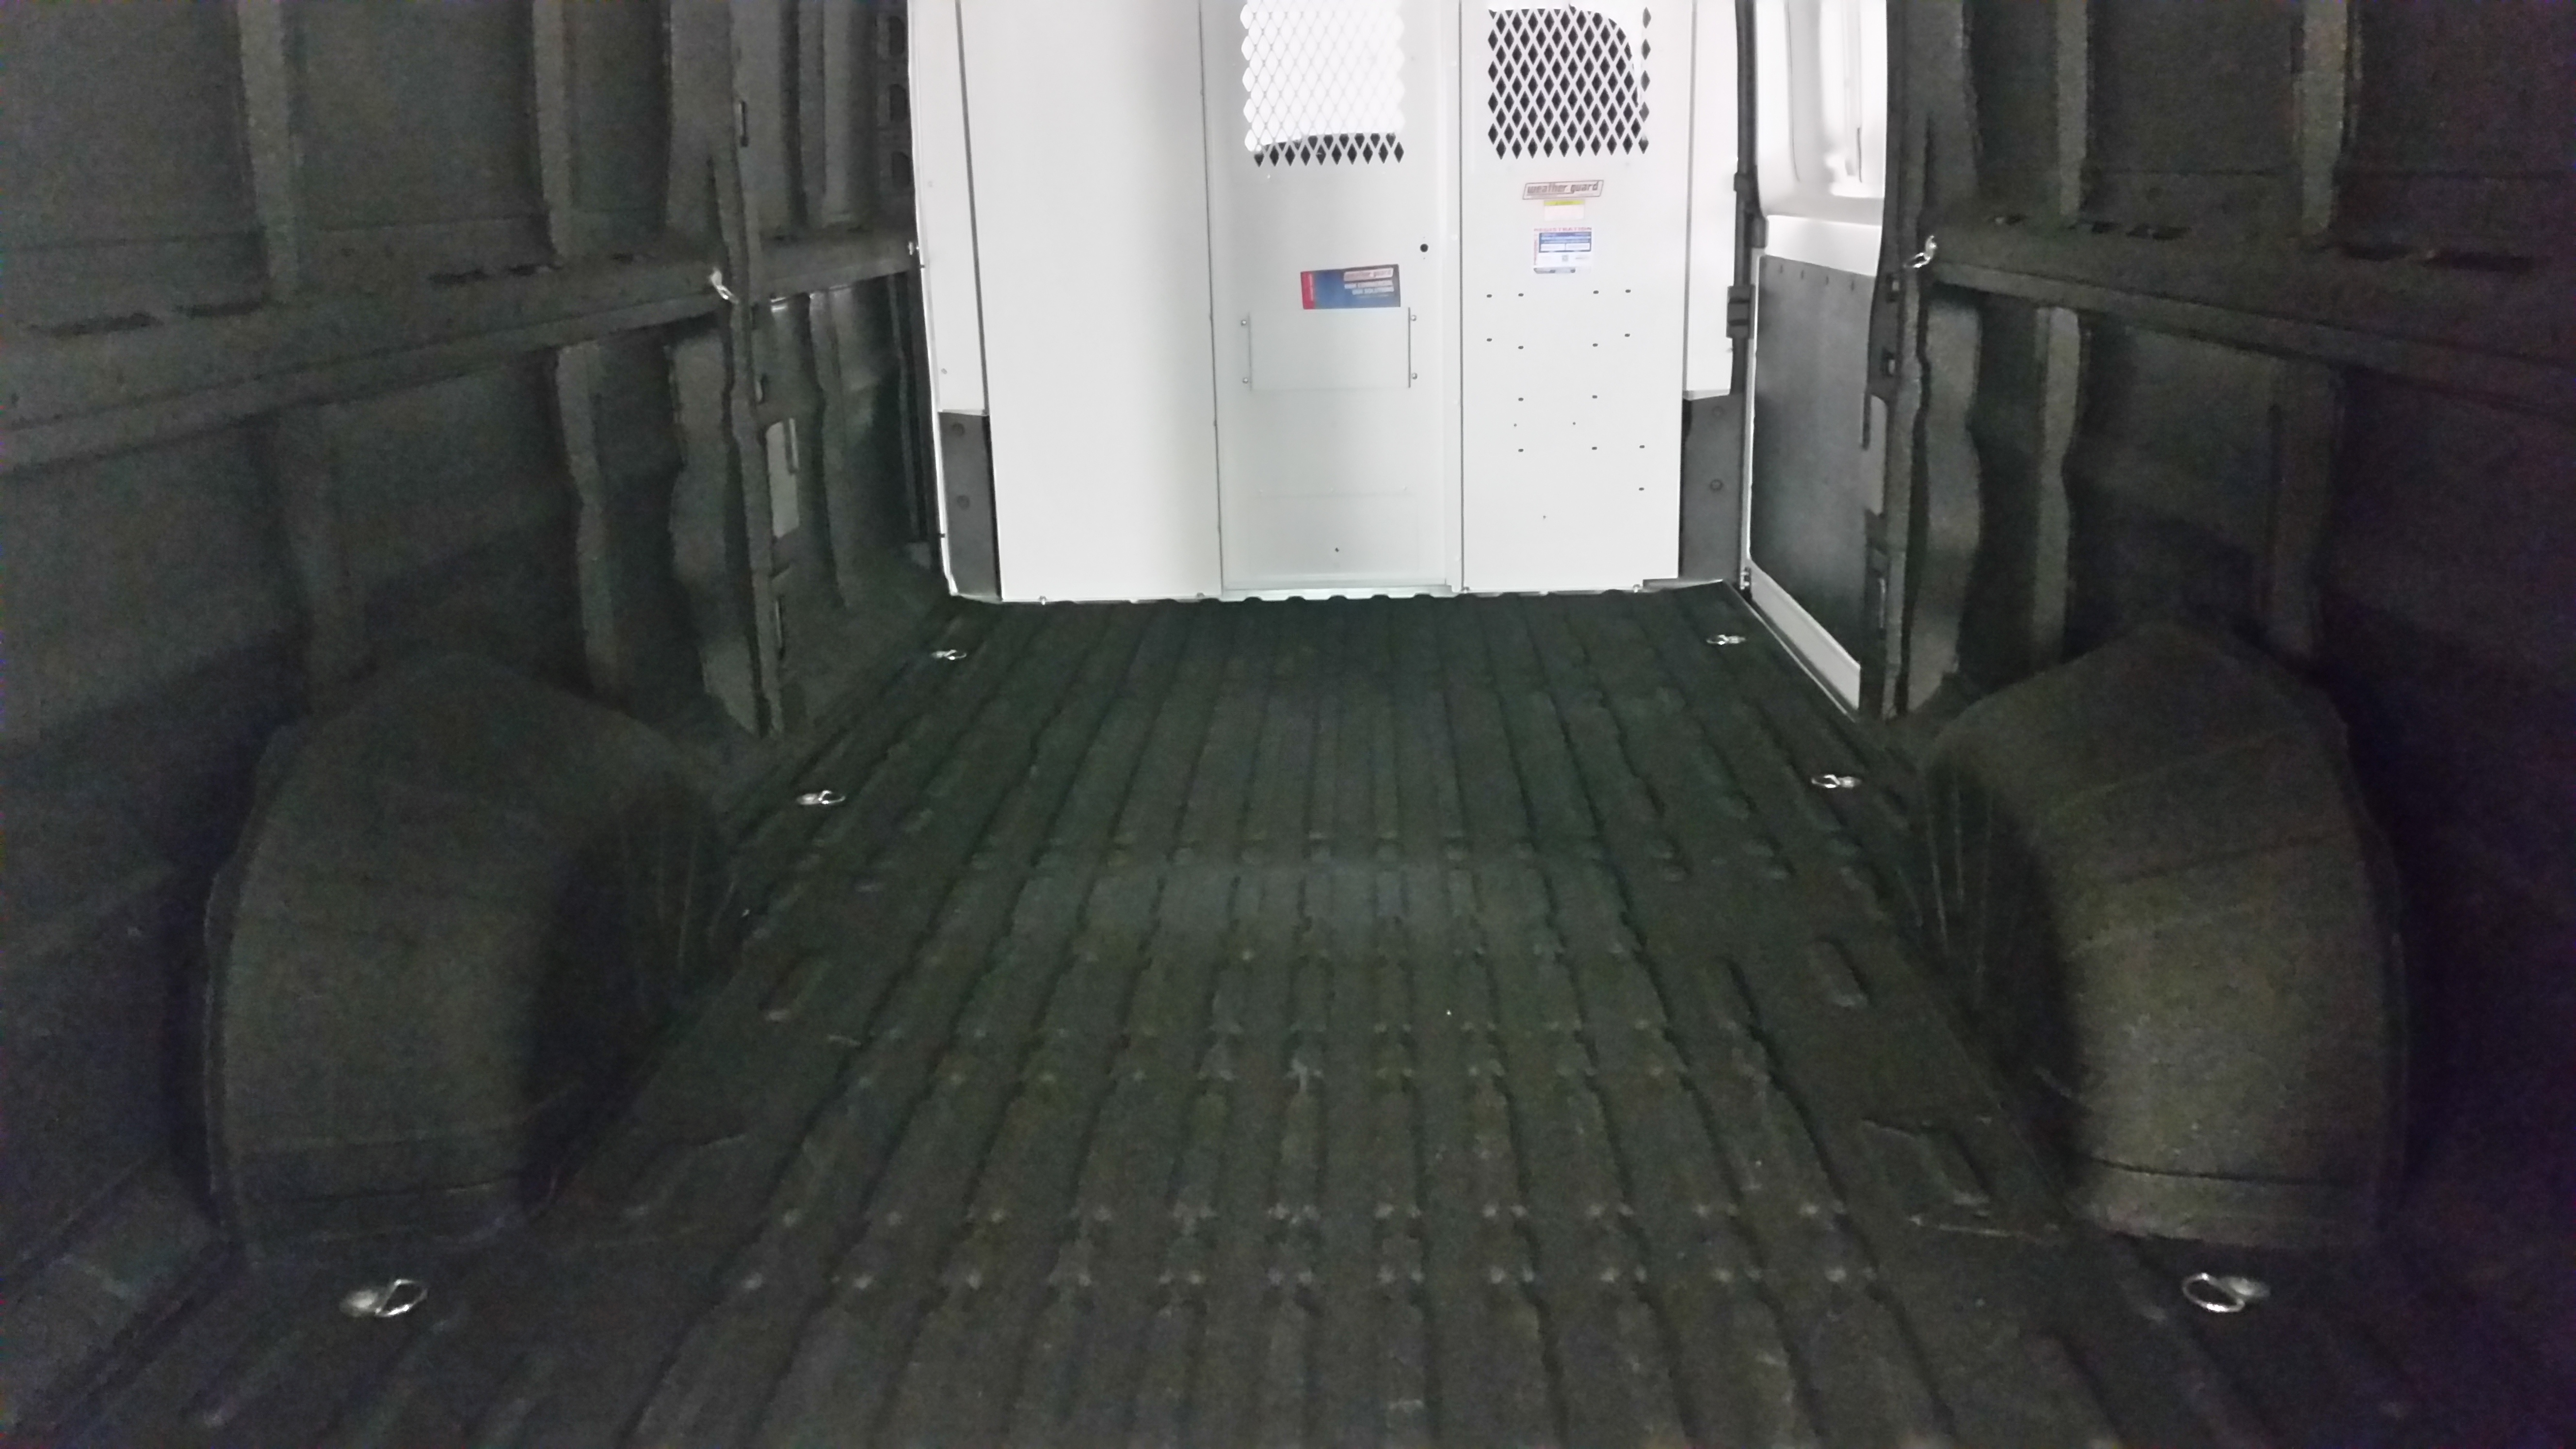 Rhino Lined Truck >> Rhino Linings Spray On Bed Liners | Truck Specialties